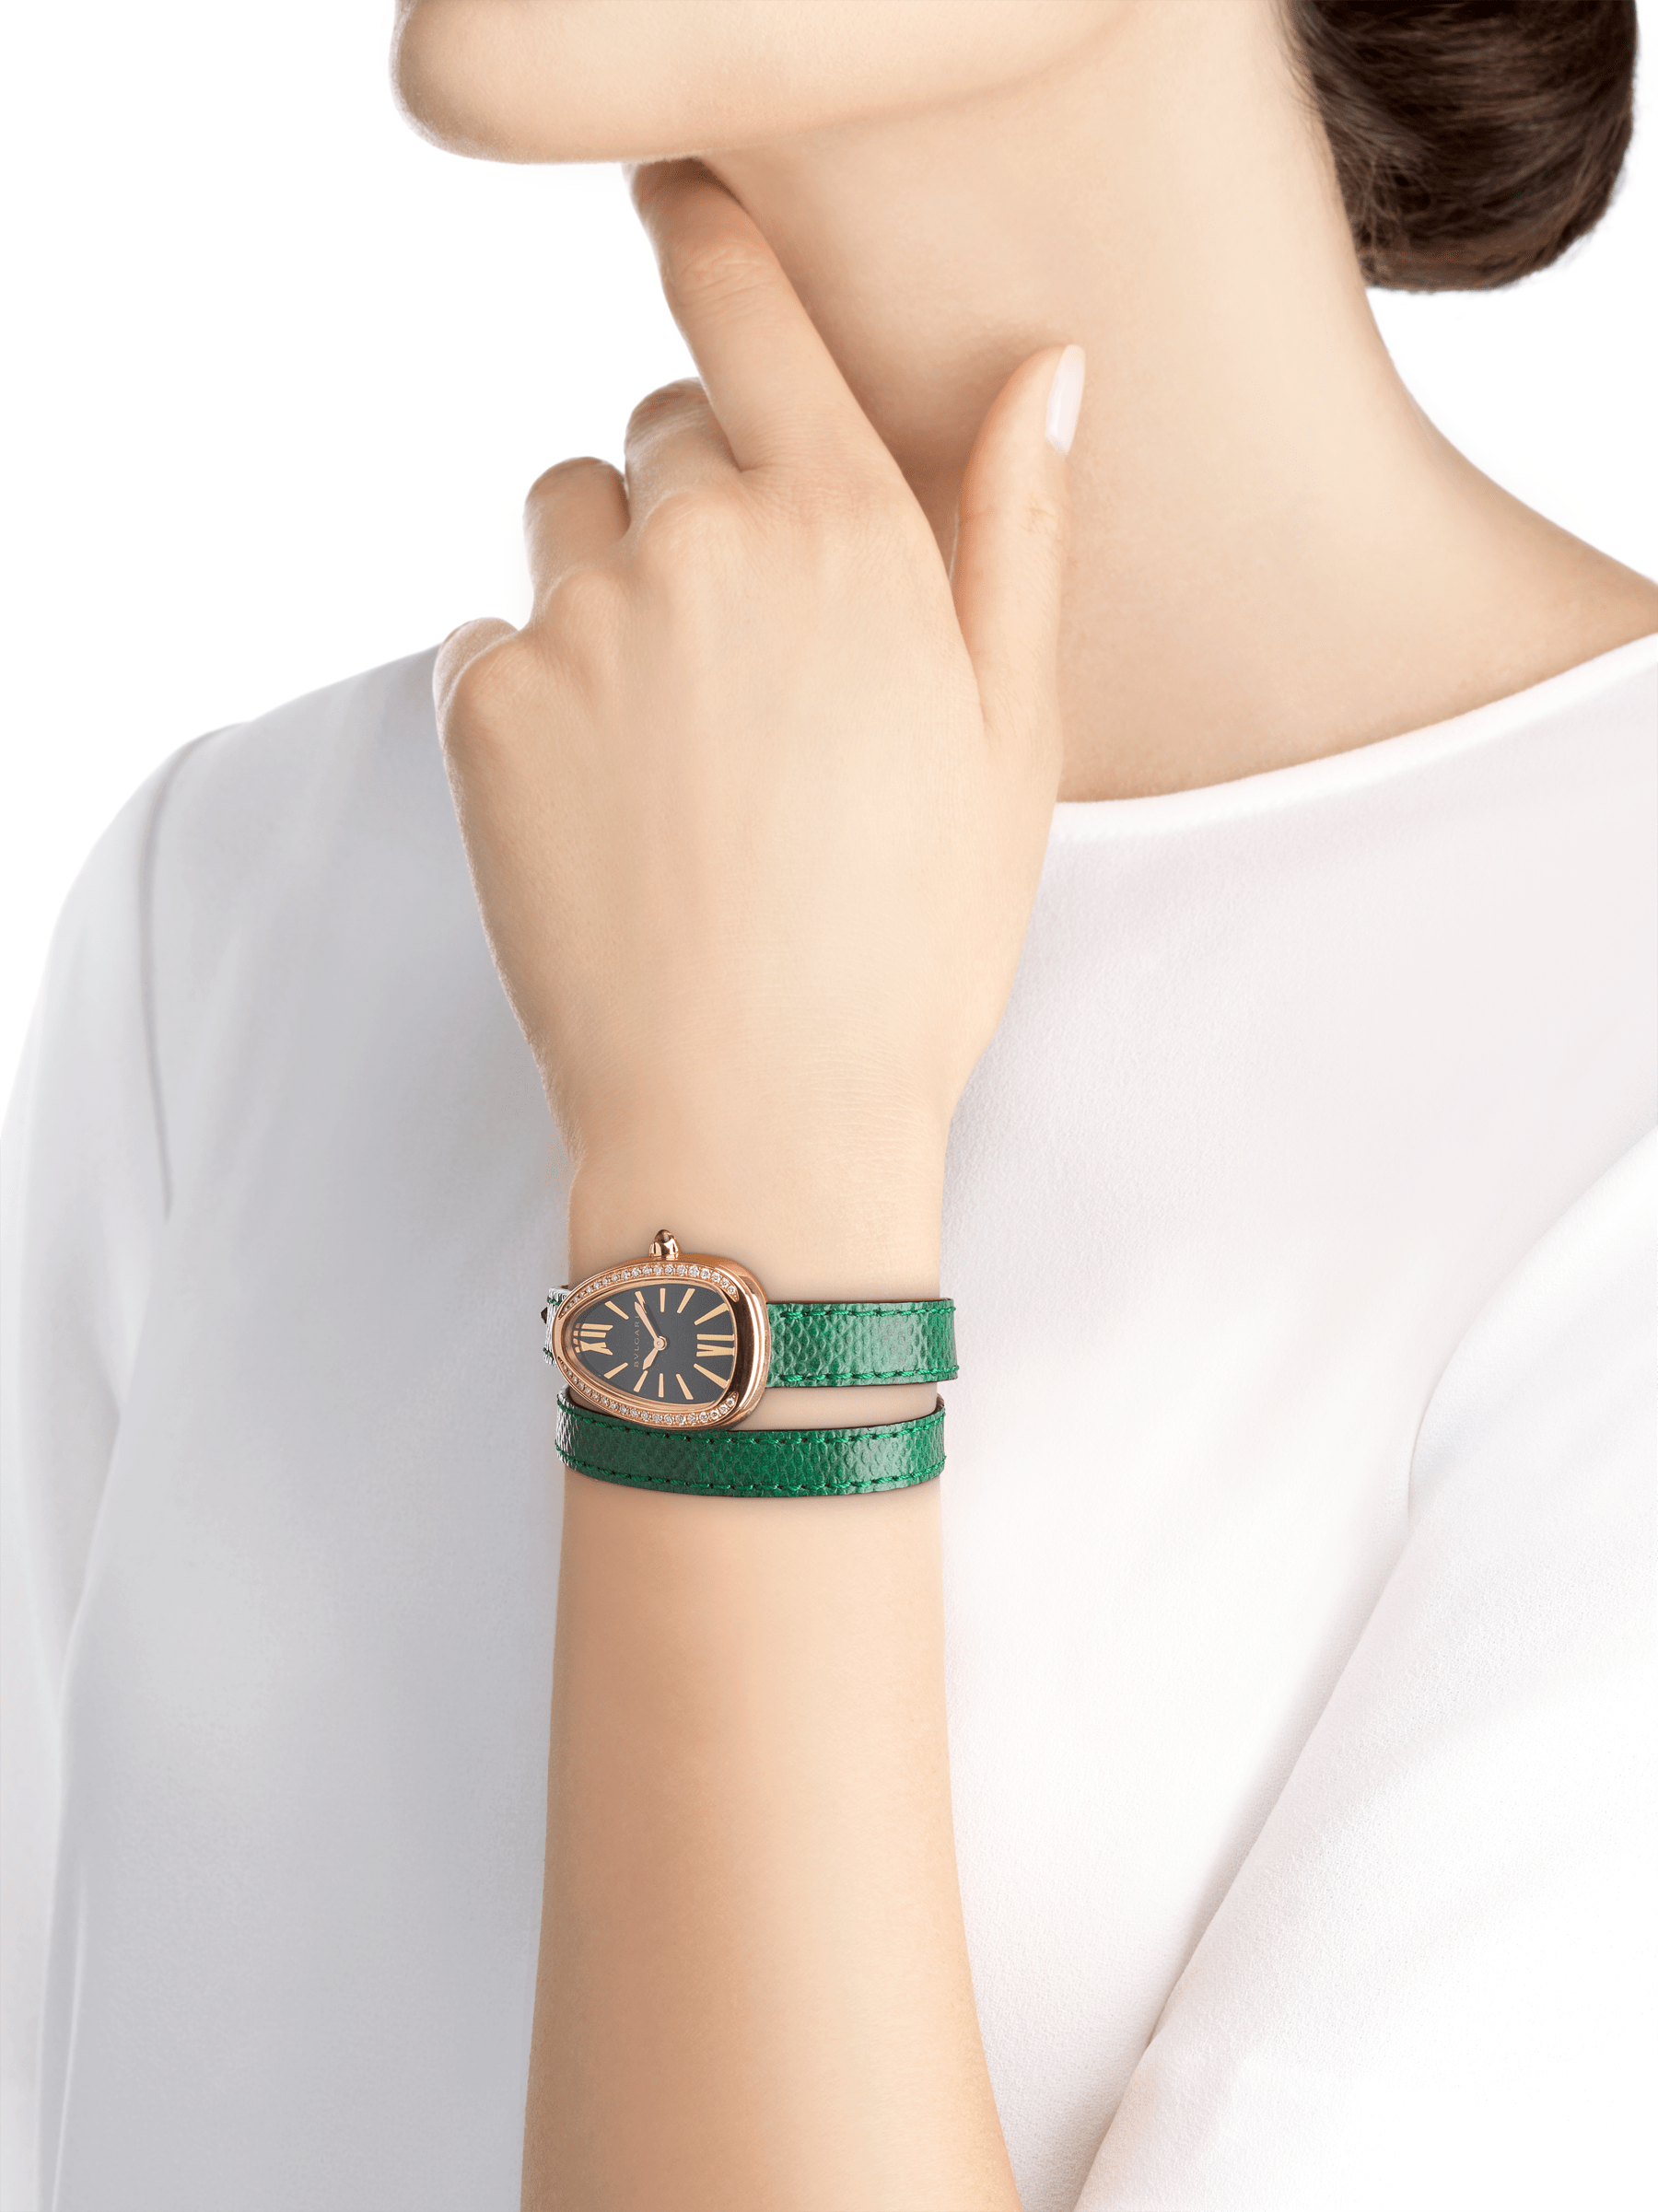 Serpenti watch with 18 kt rose gold case set with round brilliant-cut diamonds, black lacquered dial and interchangeable double spiral bracelet in green karung leather 102918 image 3